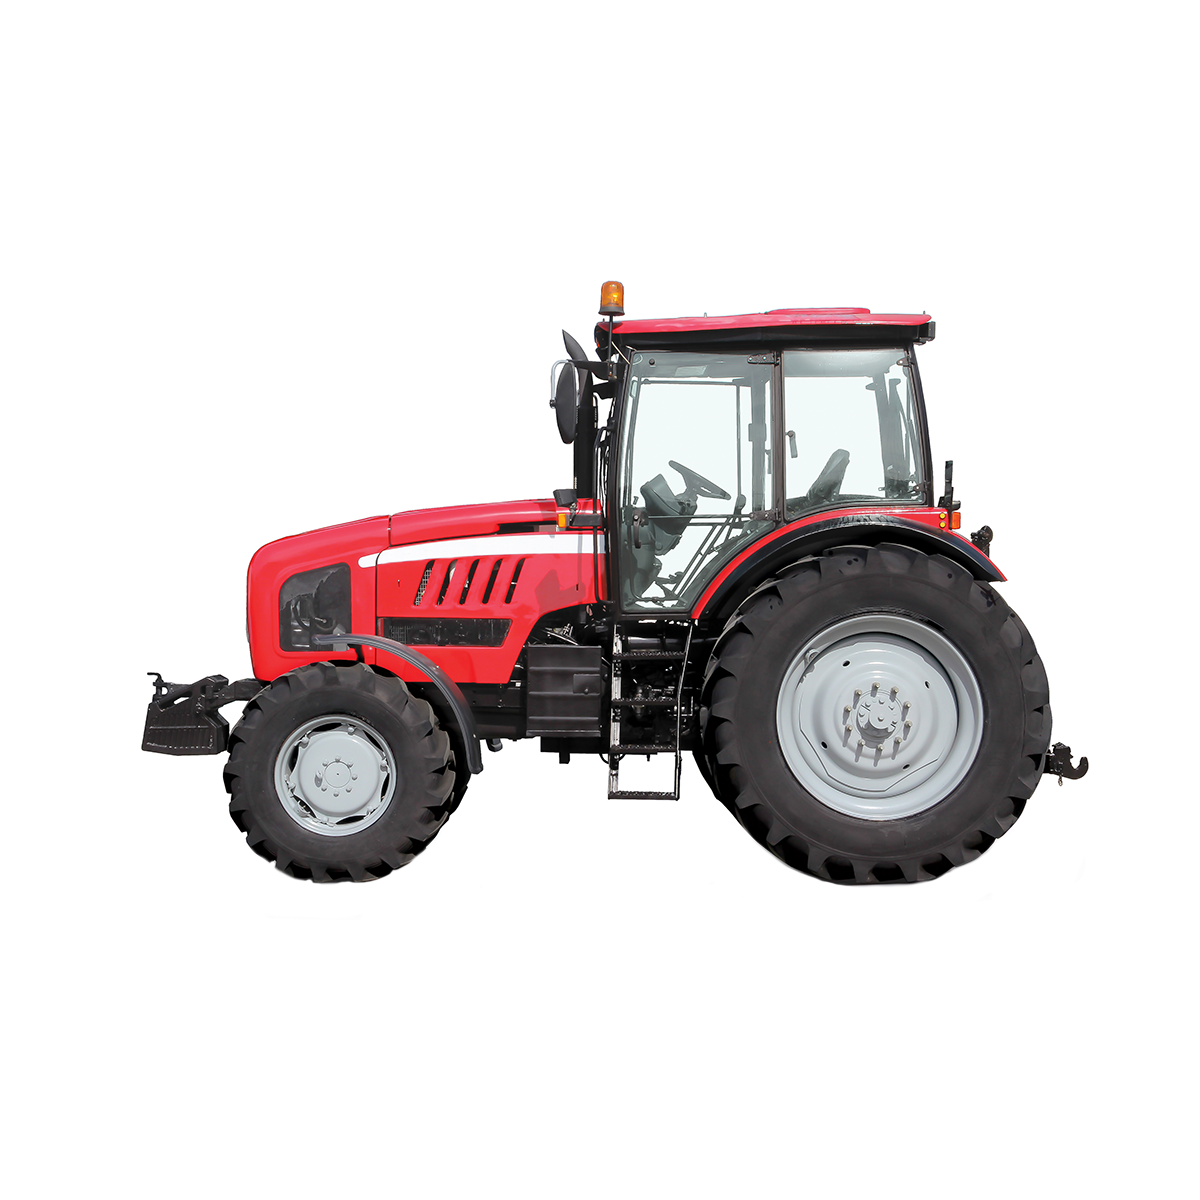 Tractors and other Field Equipment Tracking